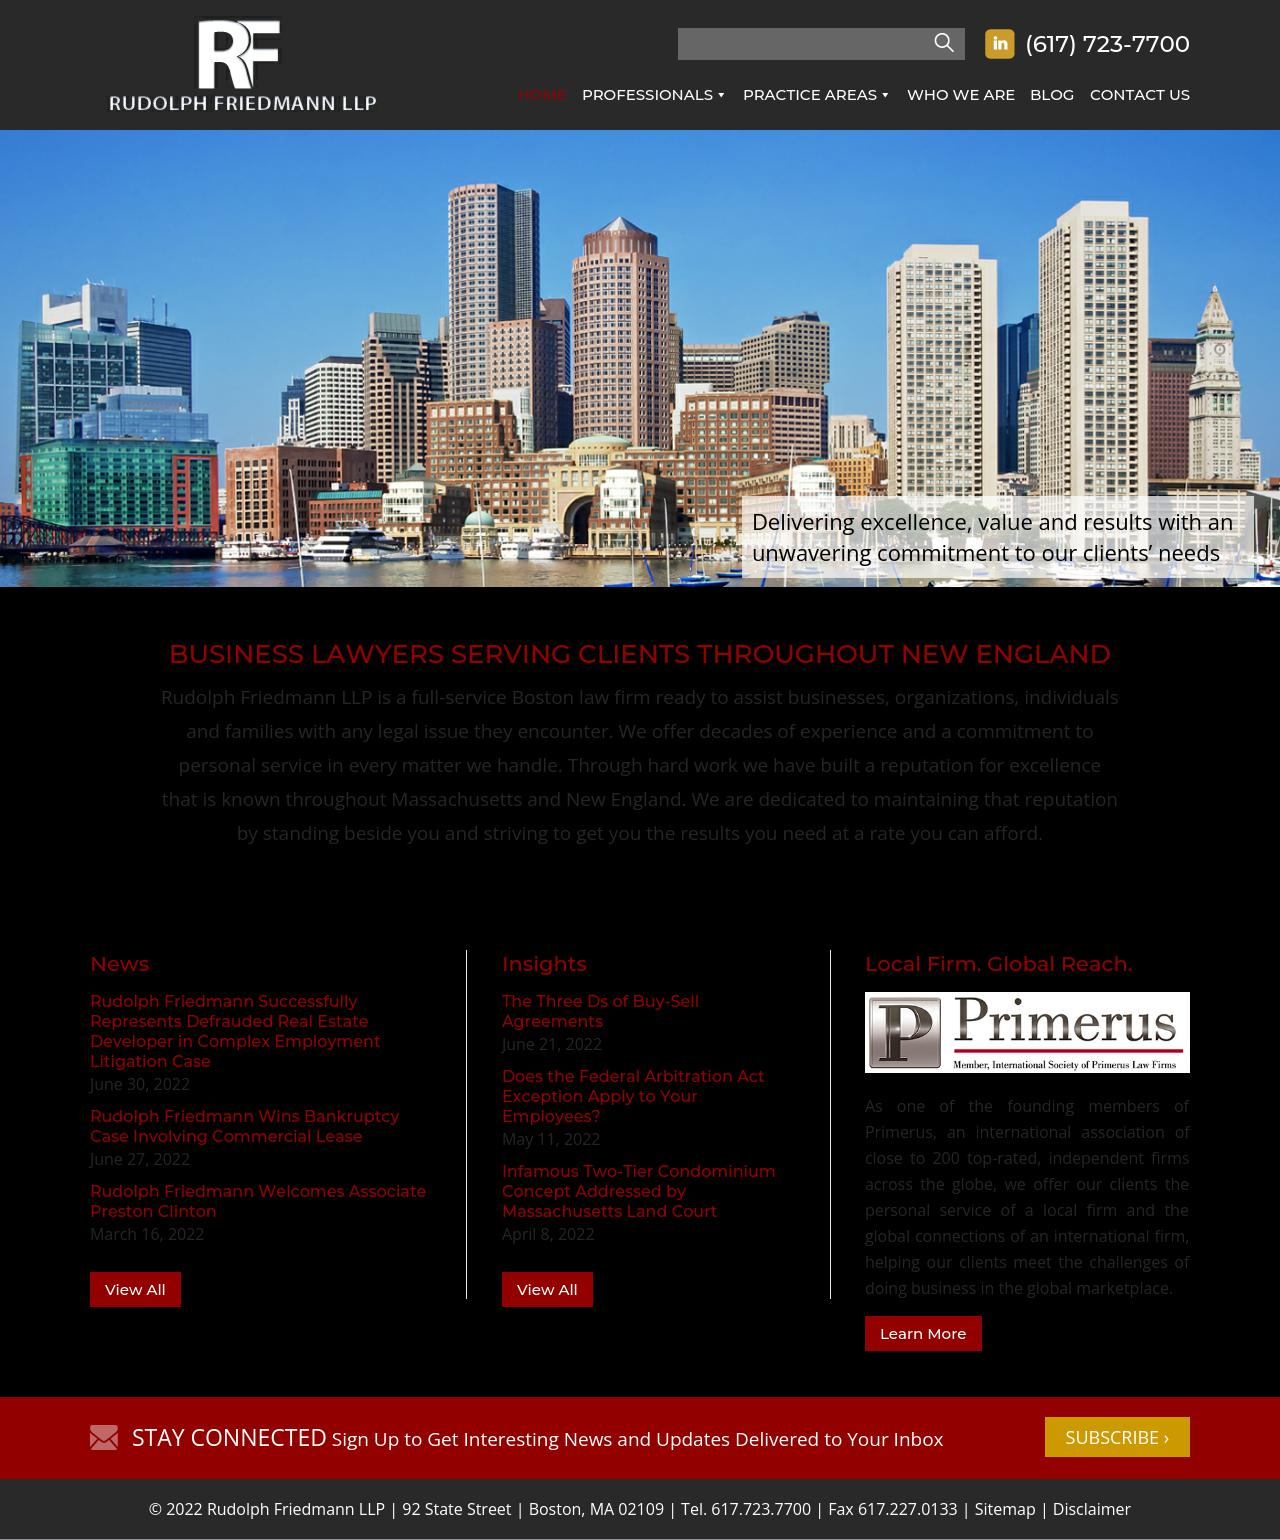 Rudolph Friedmann LLP - Boston MA Lawyers